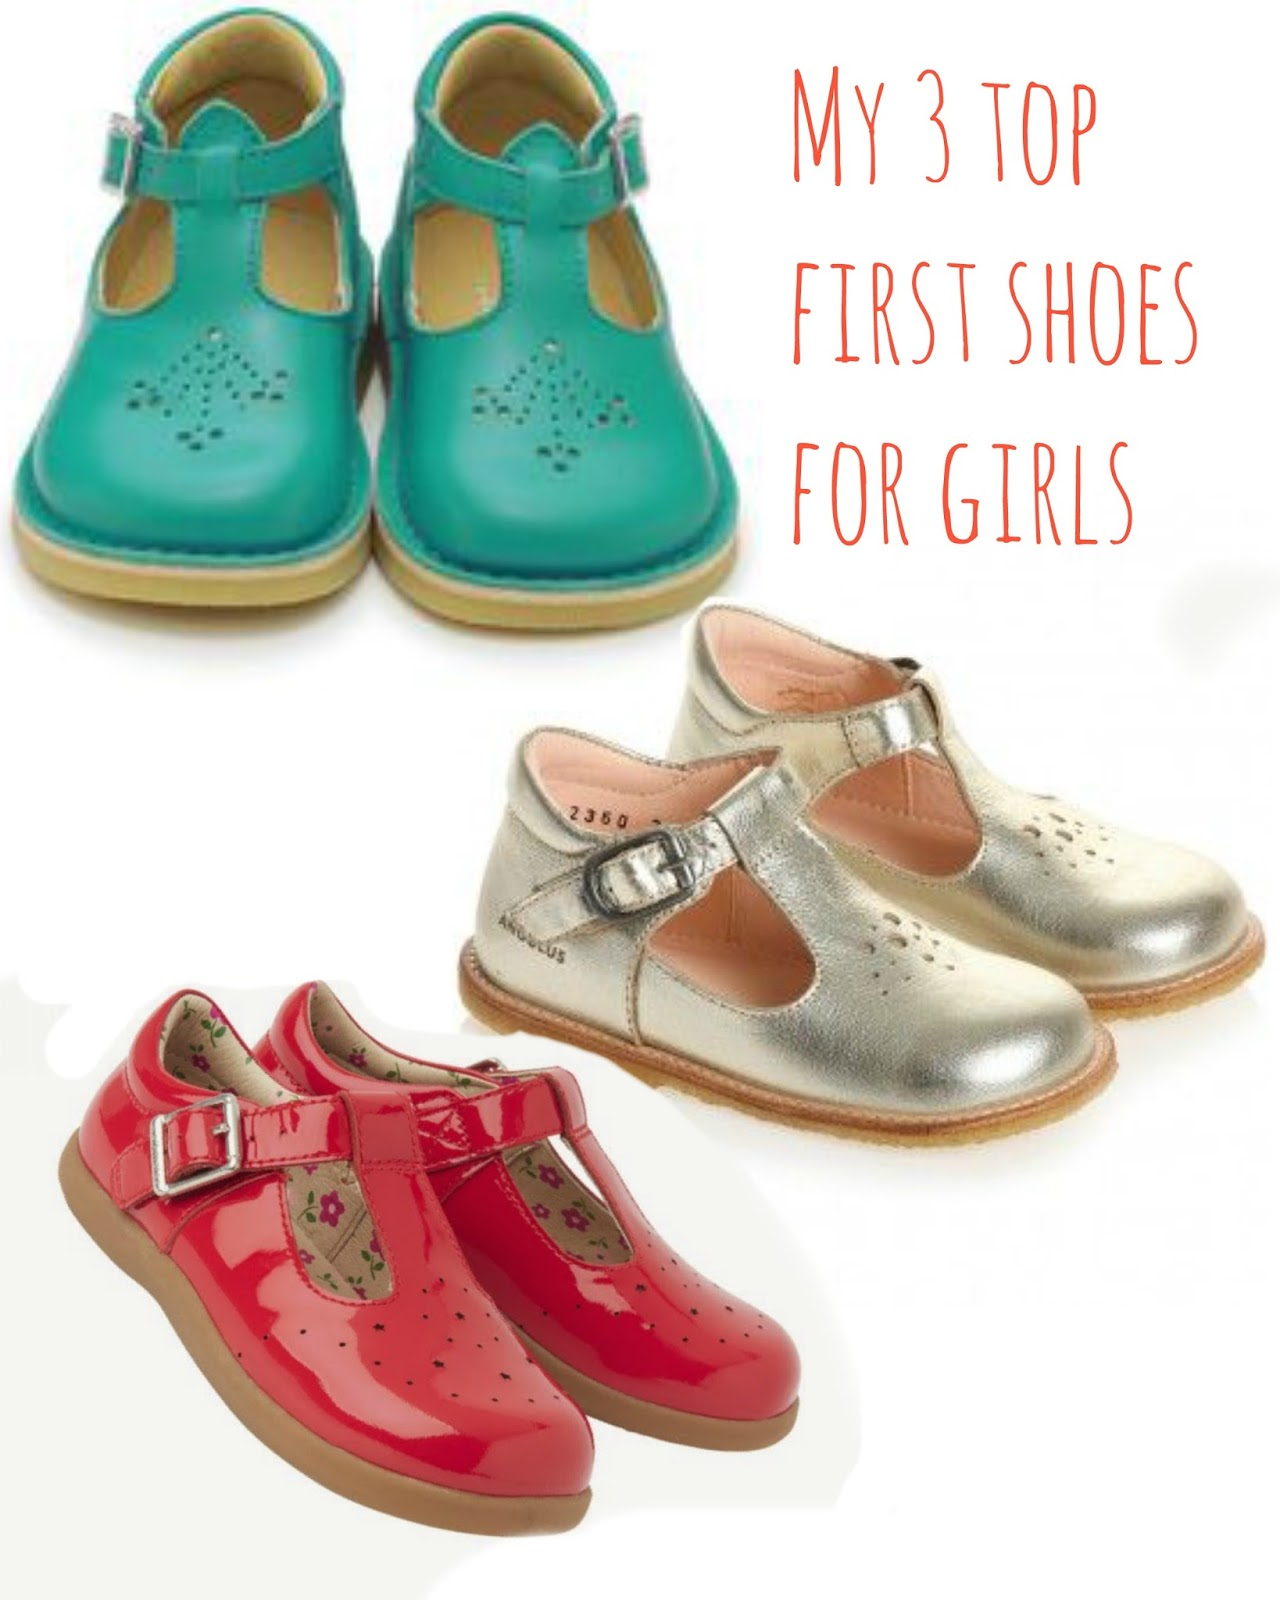 mamasVIB | V. I. BUYS: Those first walking shoes…my 3 tops picks for Miss Marine, first shoes | baby walking shoes | toddler fashion | V.I.BABY | mamasVIB| startrite | angelus | marks & Spencer